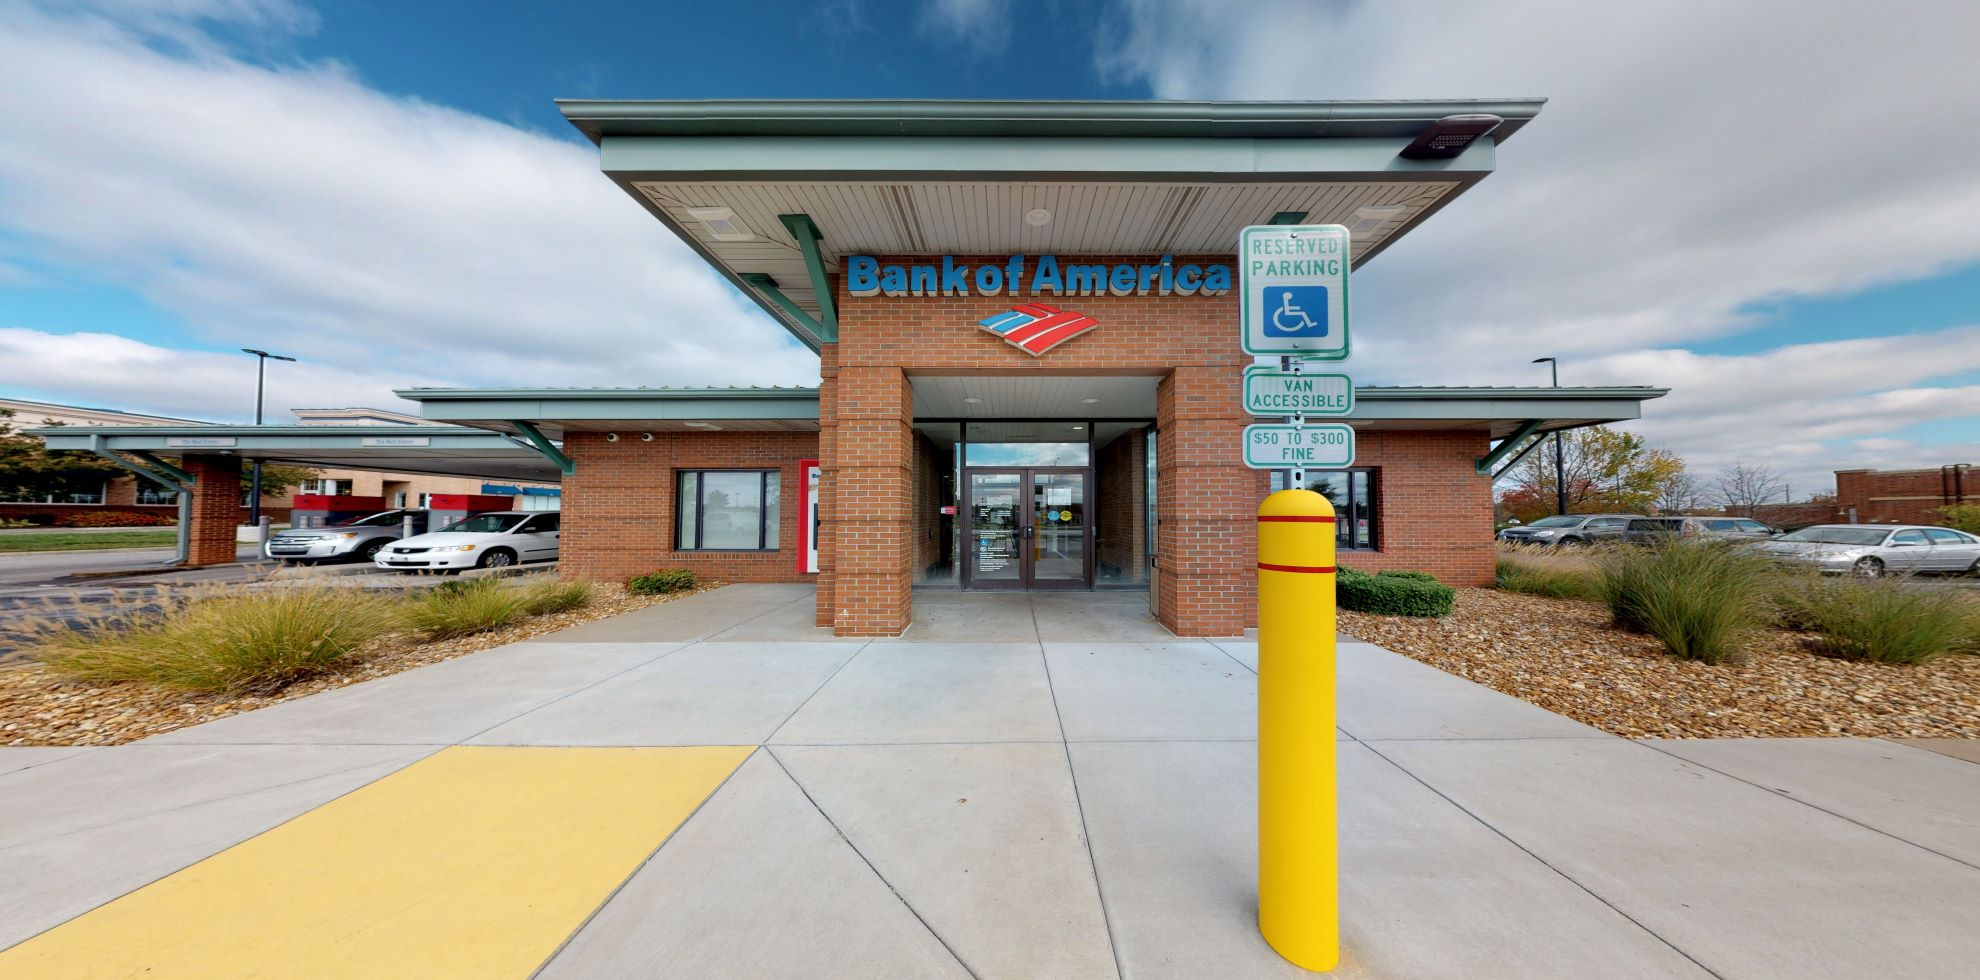 Bank of America financial center with drive-thru ATM | 8440 W 135th St, Overland Park, KS 66223